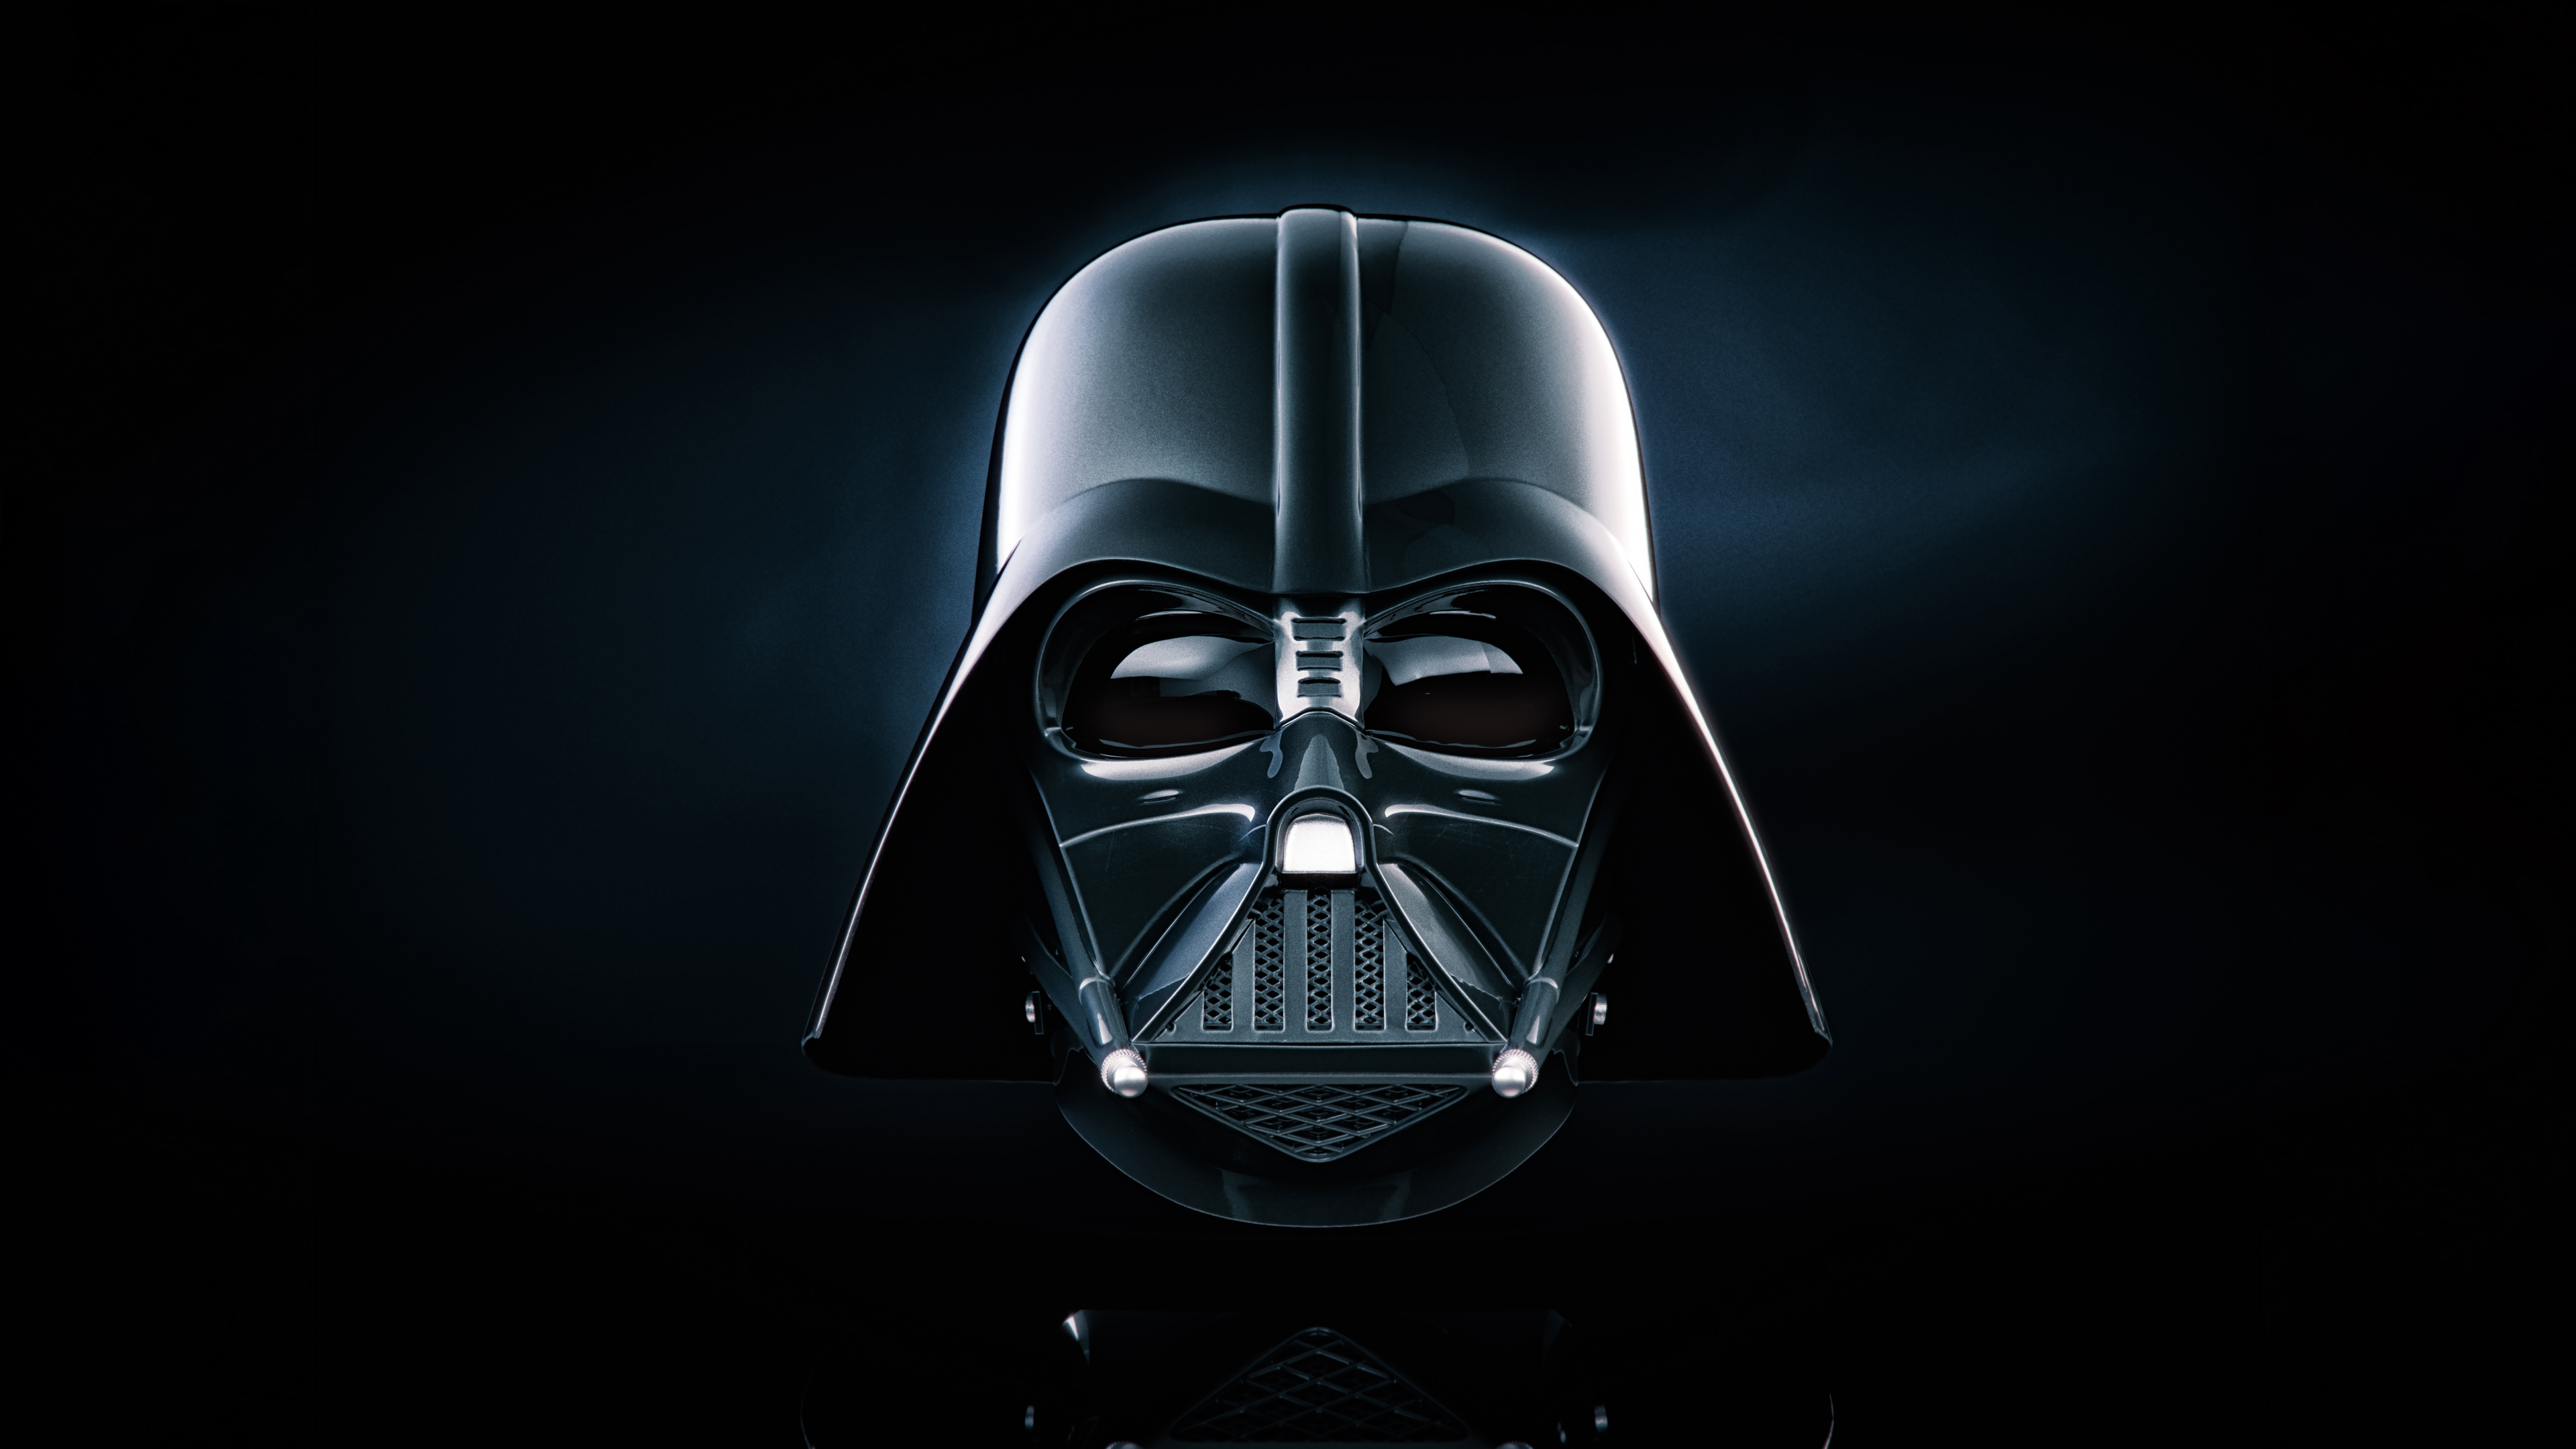 Darth Vader Wallpaper 8k Ultra Hd Id 3646